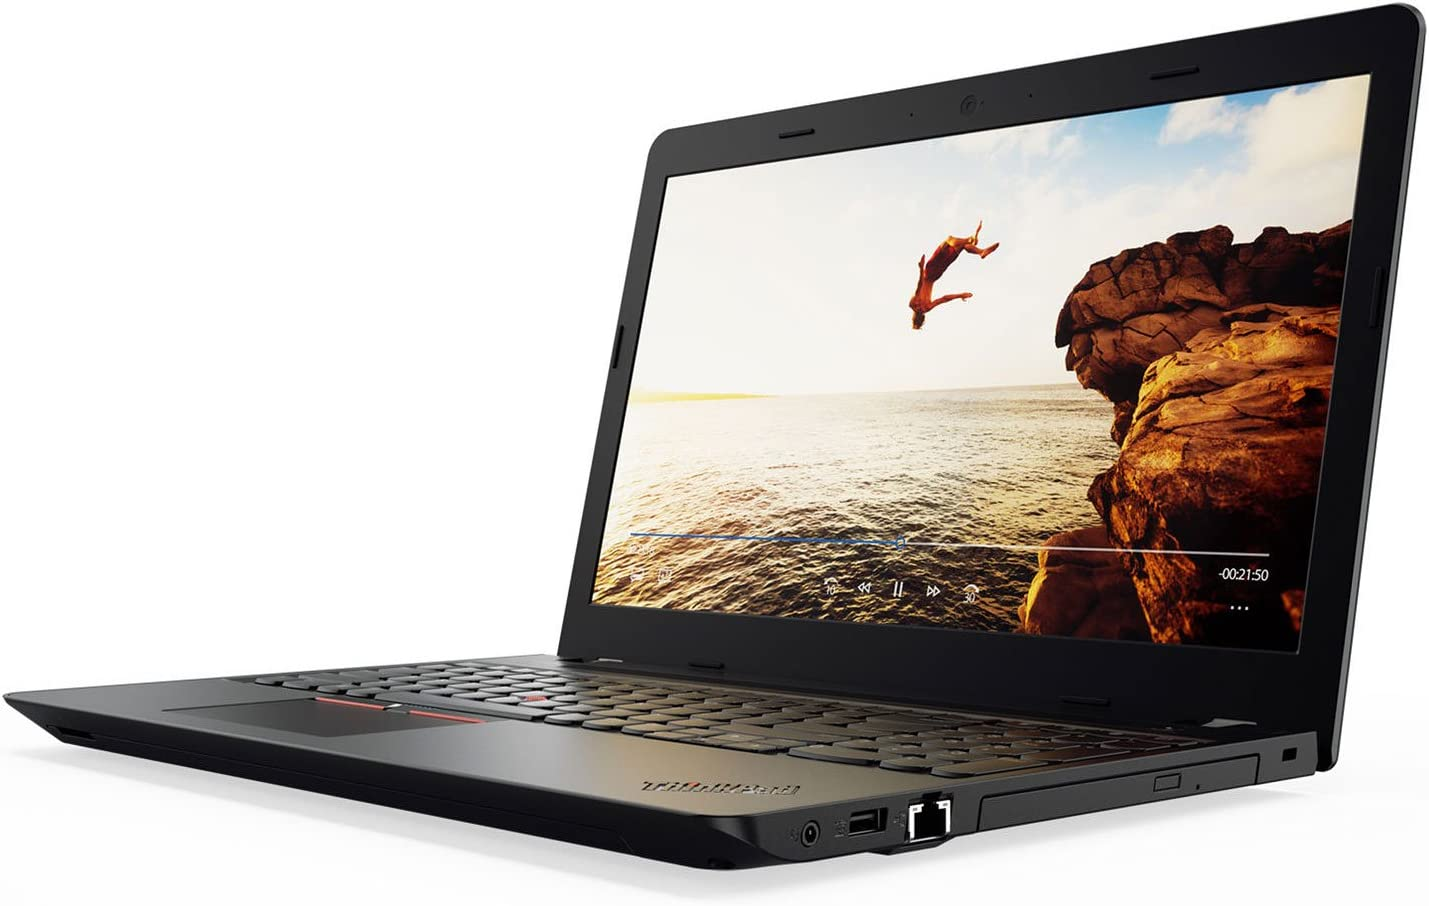 Lenovo Thinkpad E575 20h8000dus 15.6 Notebook - AMD A-Series A10-9600p Dual-core (2 Core) 2.40 Ghz